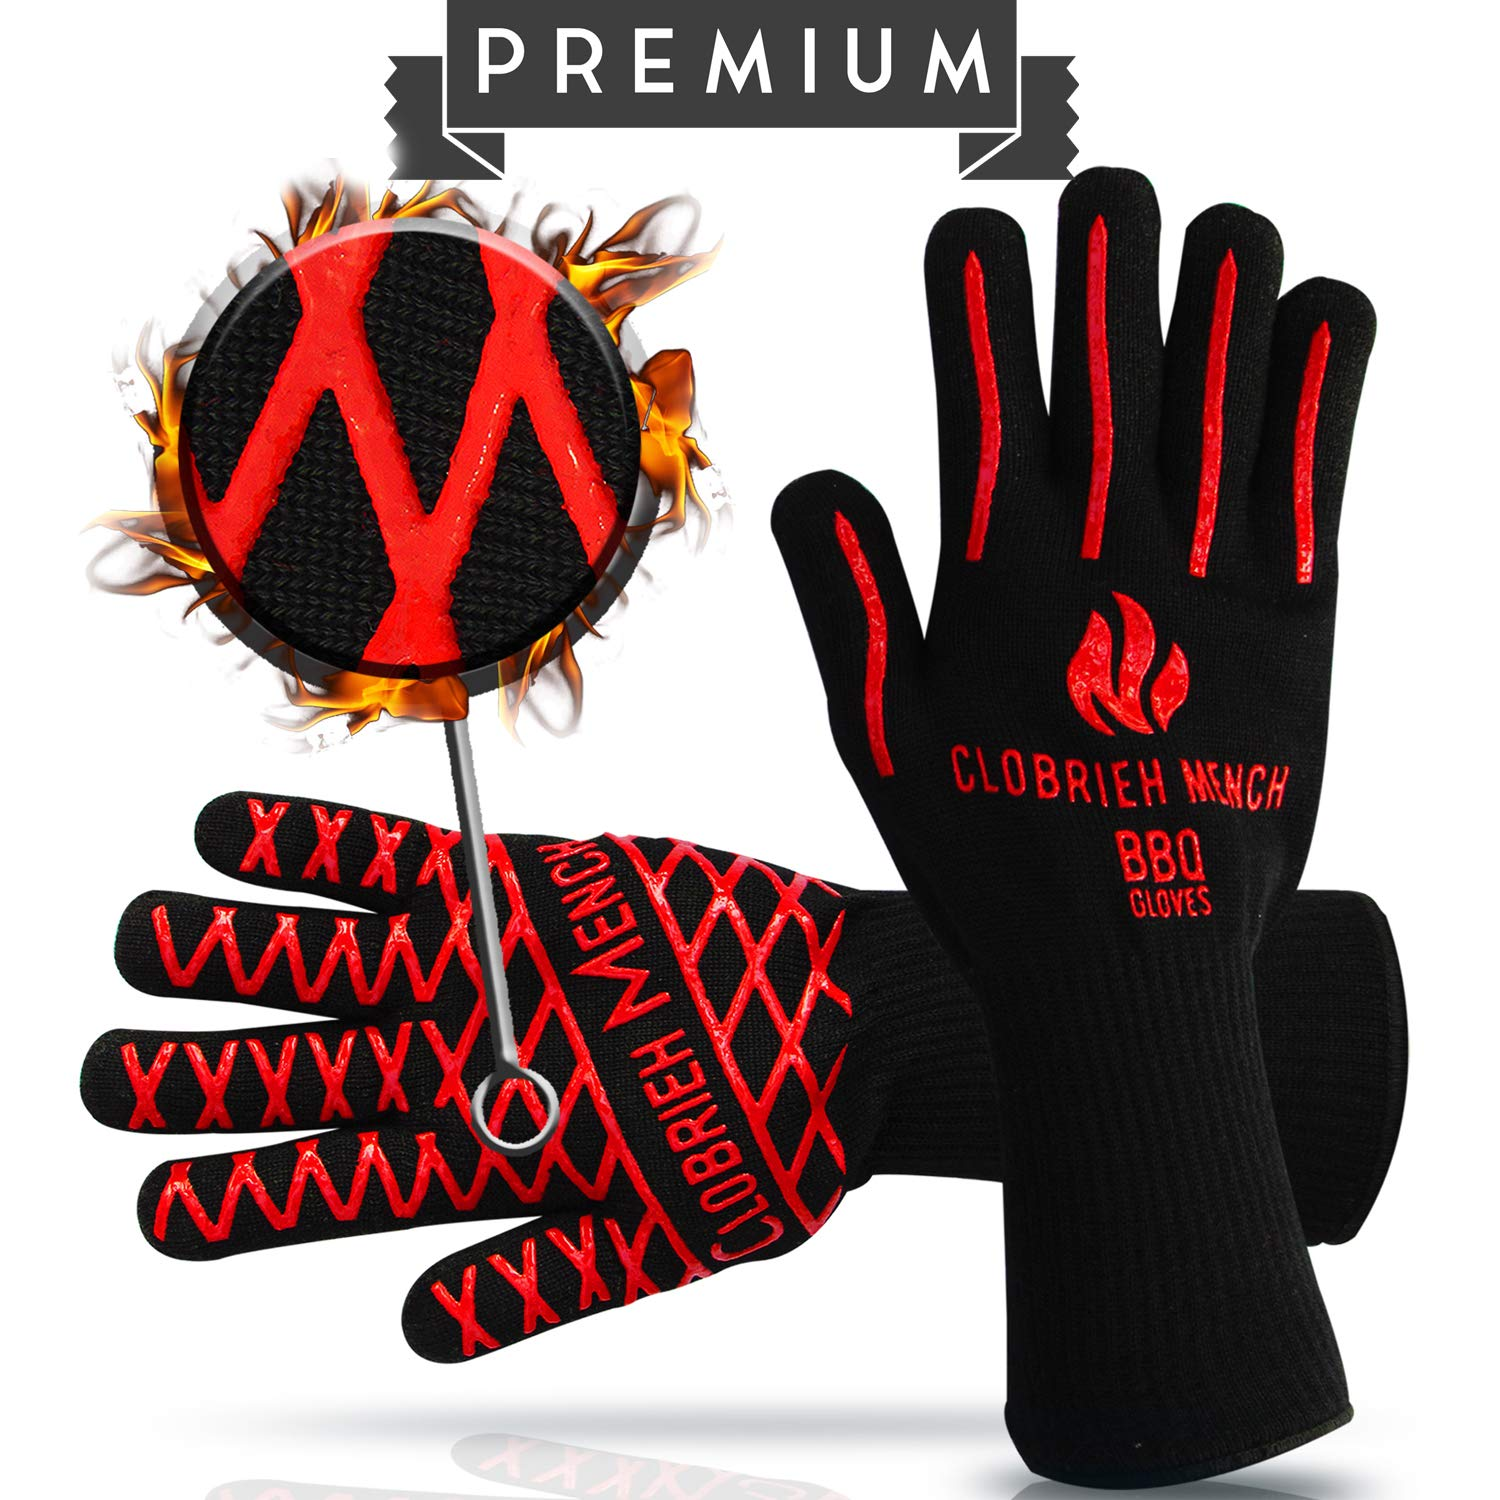 Clobrieh Mench BBQ Extreme Heat Resistant 932°F (500°C) Gloves - 14'' Long Forearm Safety & 100% Meta-Aramid Oven Mitts for Grilling, Cooking | EN407 | One Size Fits All - Black Colour - Set of 2 by Clobrieh Mench